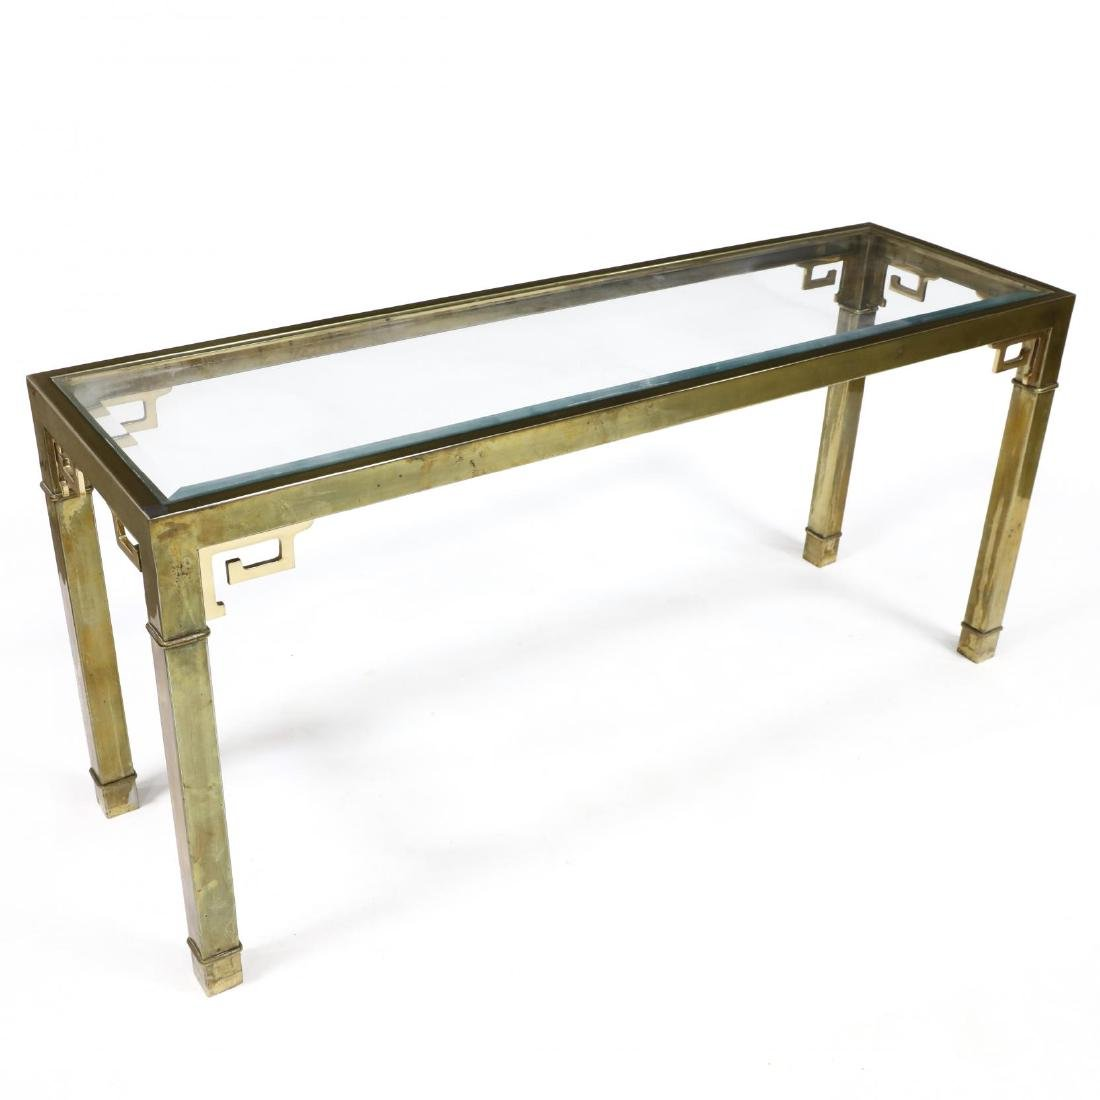 Vintage Brass and Glass Console Table - 2